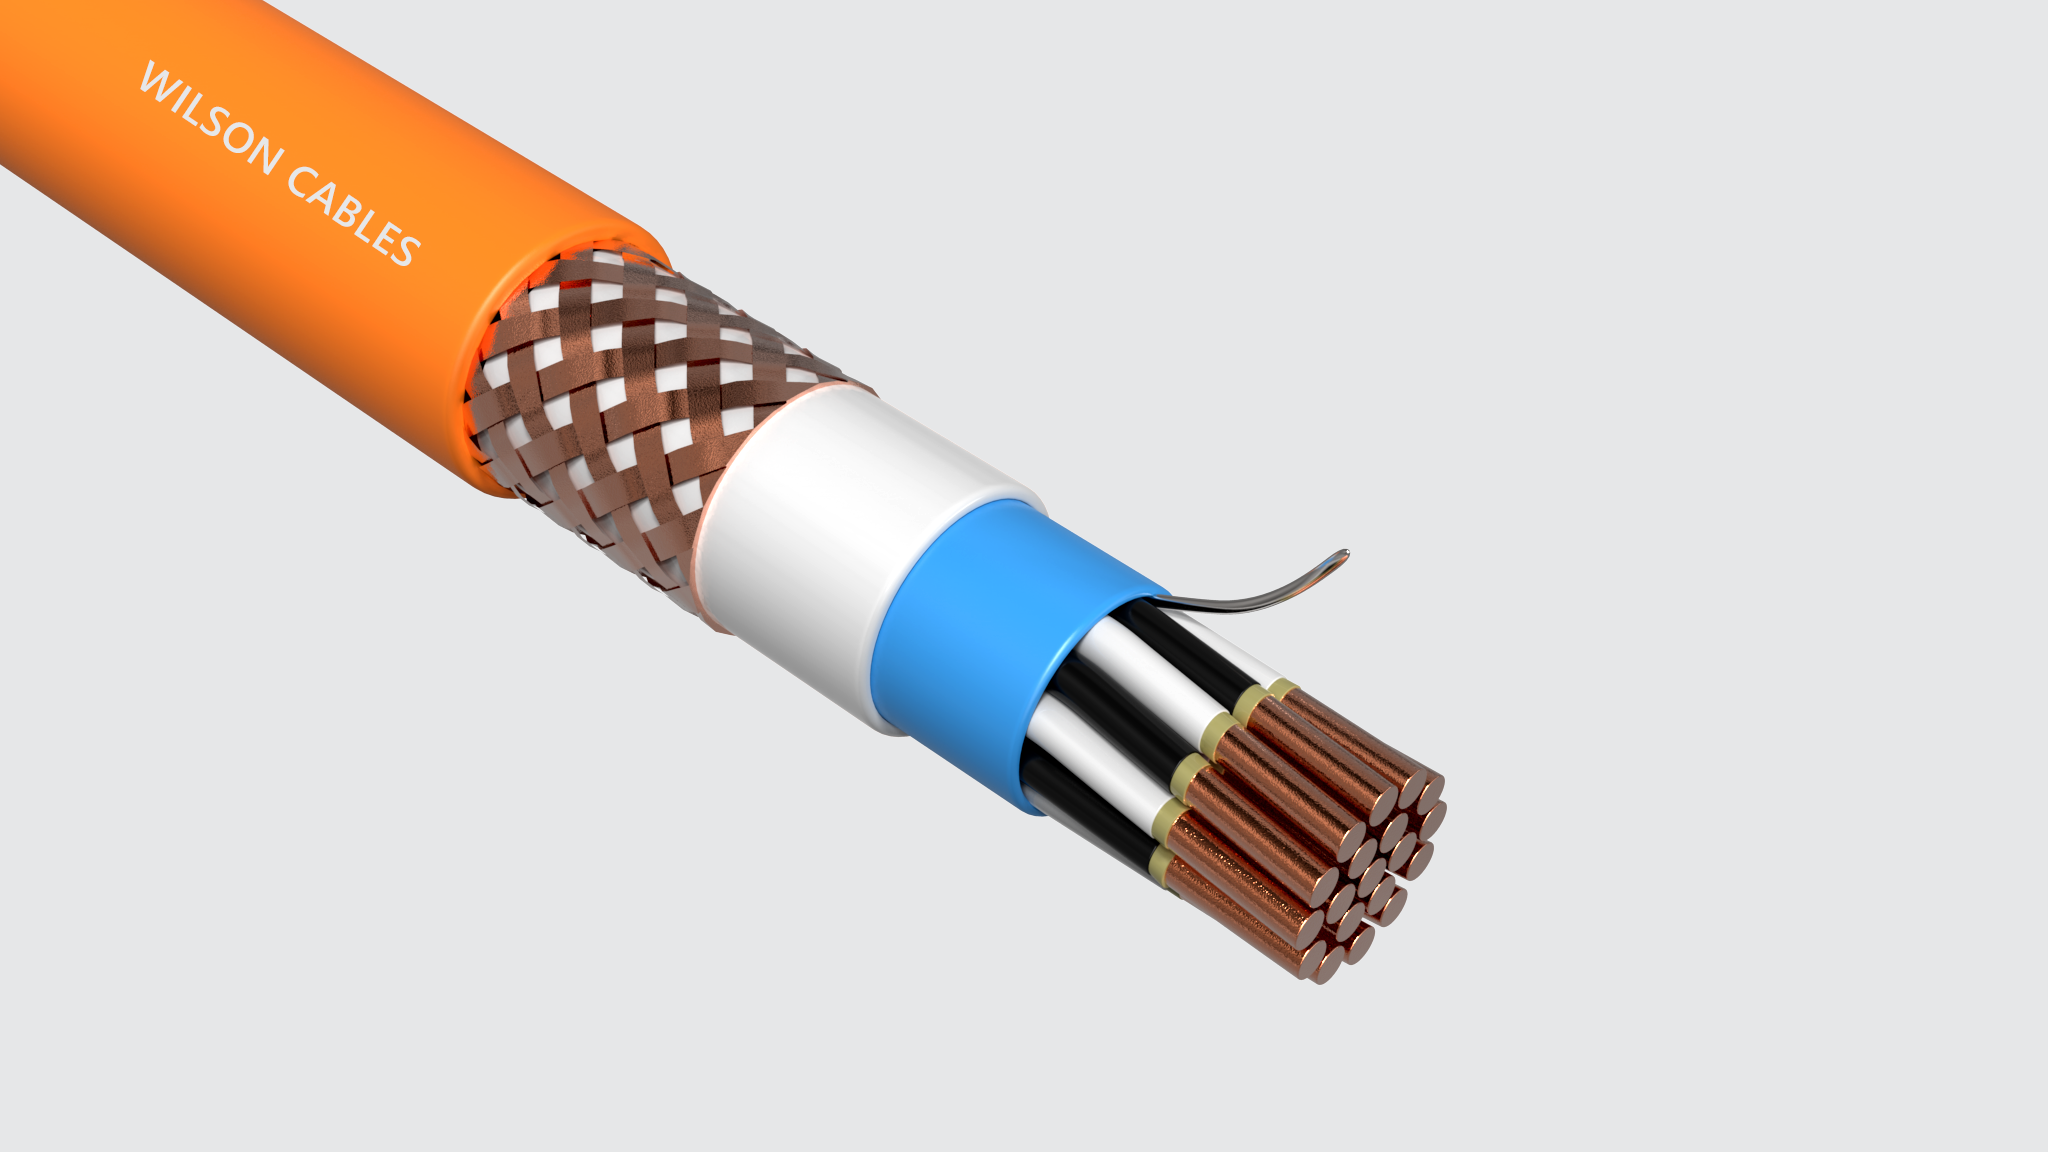 FRIC-200Q-M (SST) / FRIC-200C-M (SST) Fire Resistant Shipboard Braided Instrumentation Cables